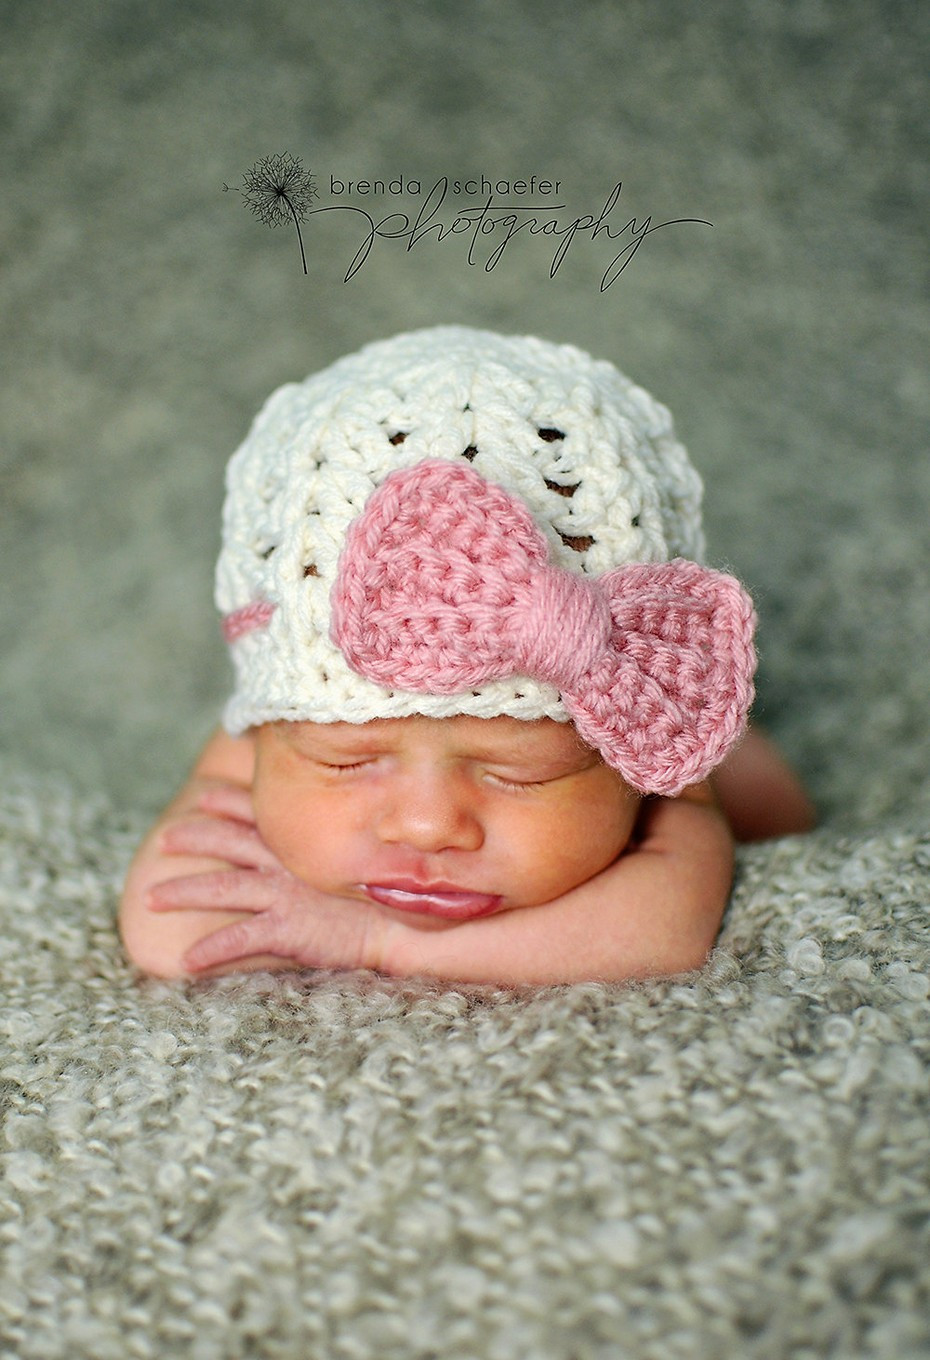 Crochet Girls Hats Unique Crochet Newborn Hat with Beautiful Design Homestylediary Of New 46 Ideas Crochet Girls Hats